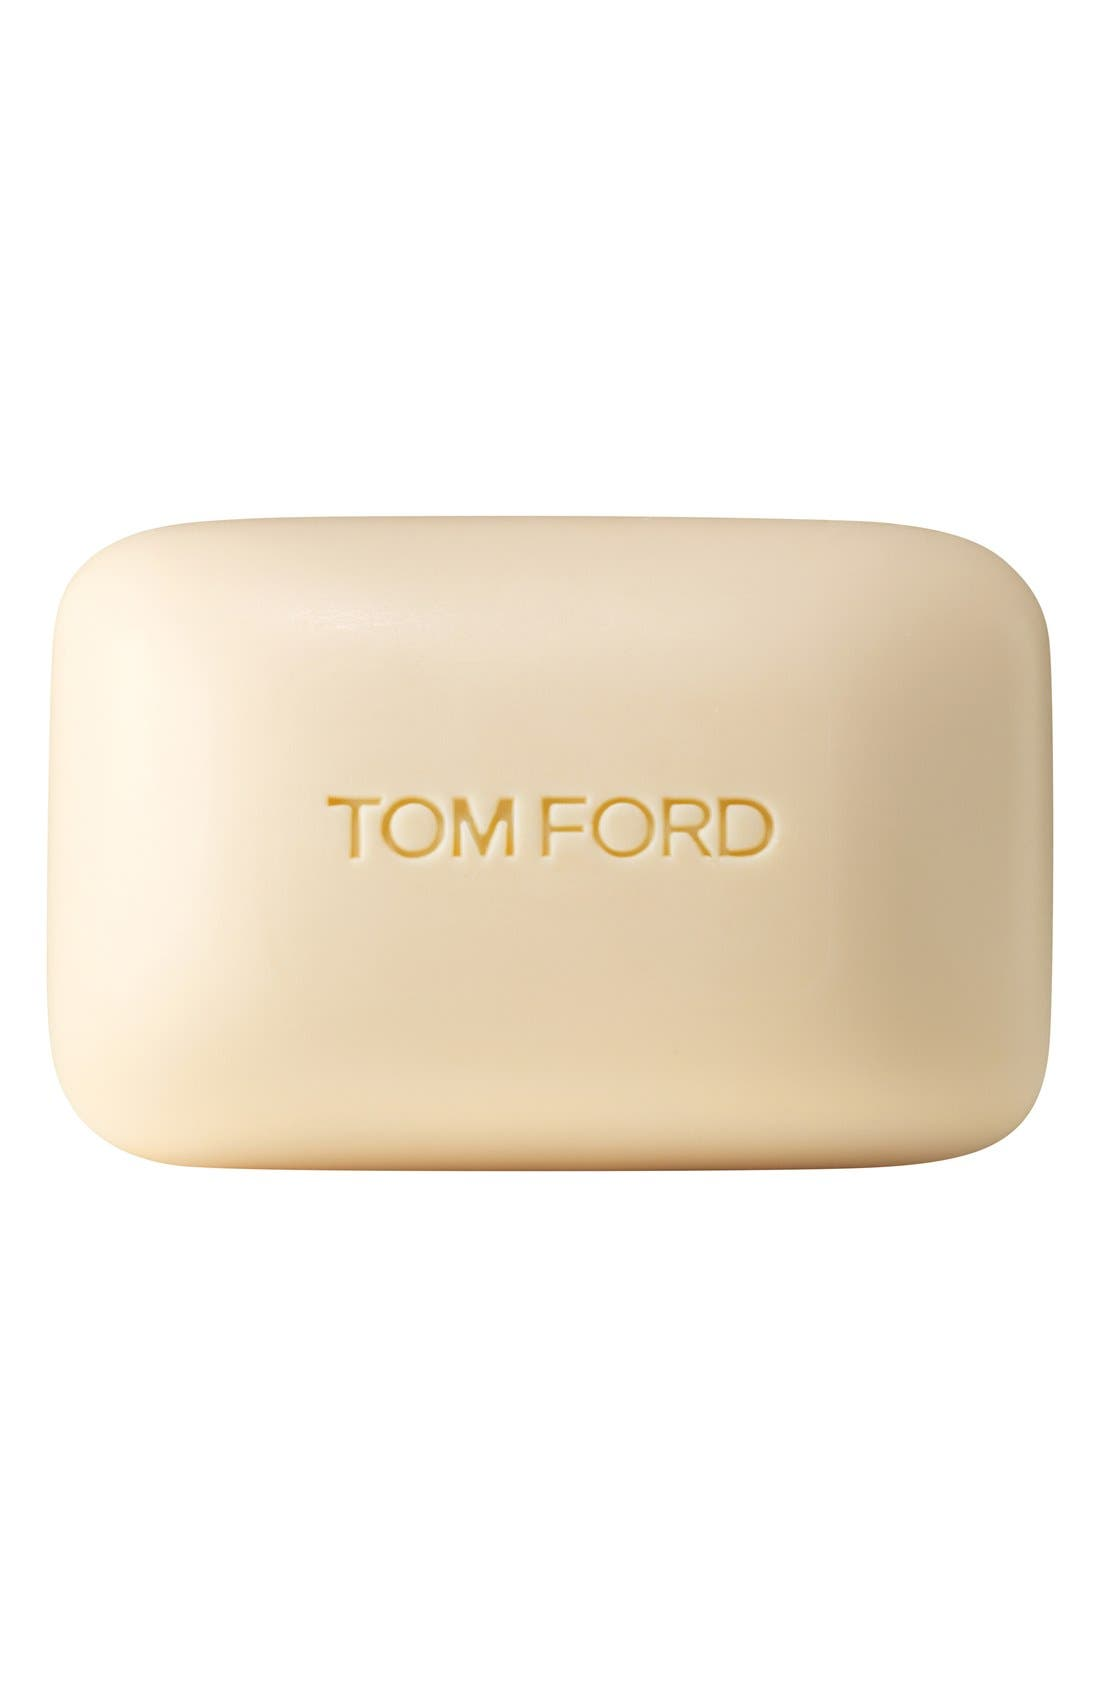 Tom Ford 'Jasmin Rouge' Bath Soap